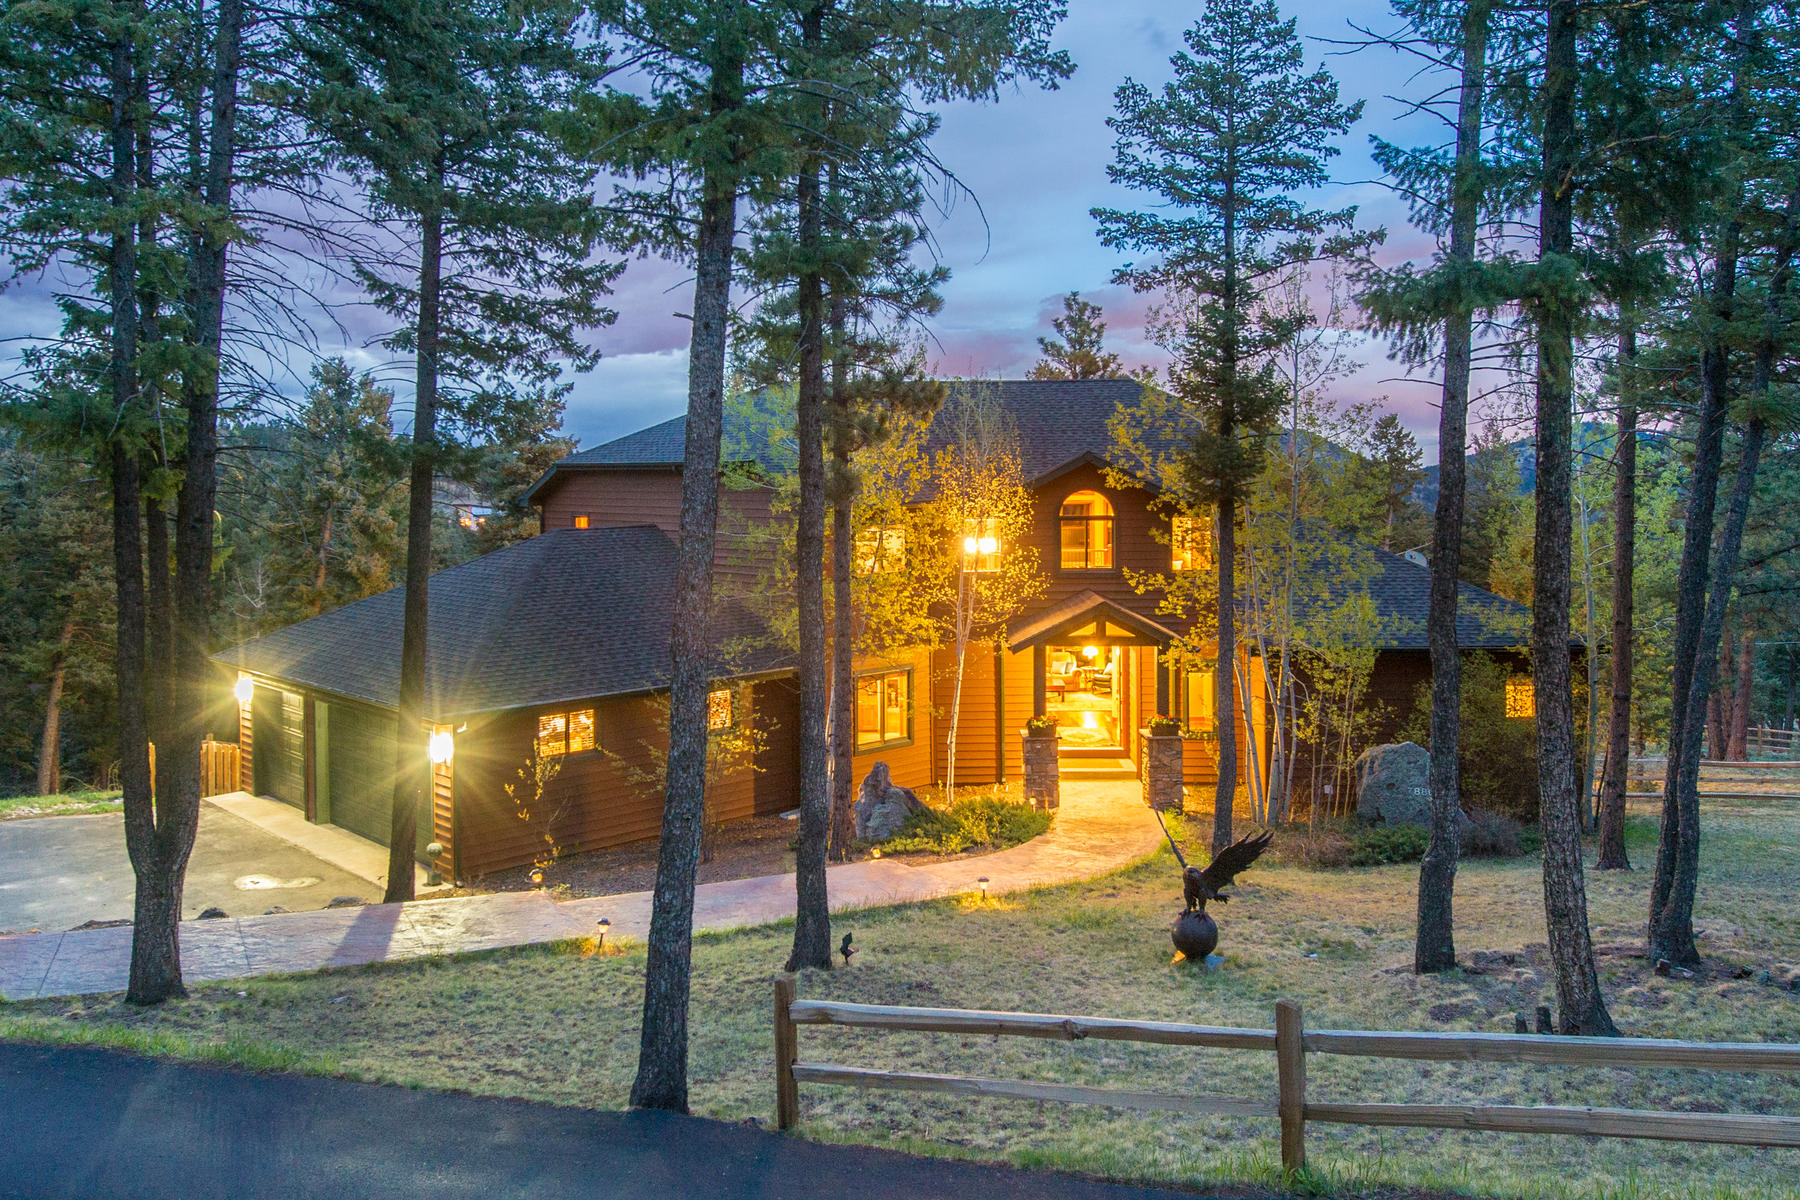 Single Family Home for Active at Executive Custom Home Set Among the Towering Pines with Privacy 7880 South Homesteader Drive Morrison, Colorado 80465 United States